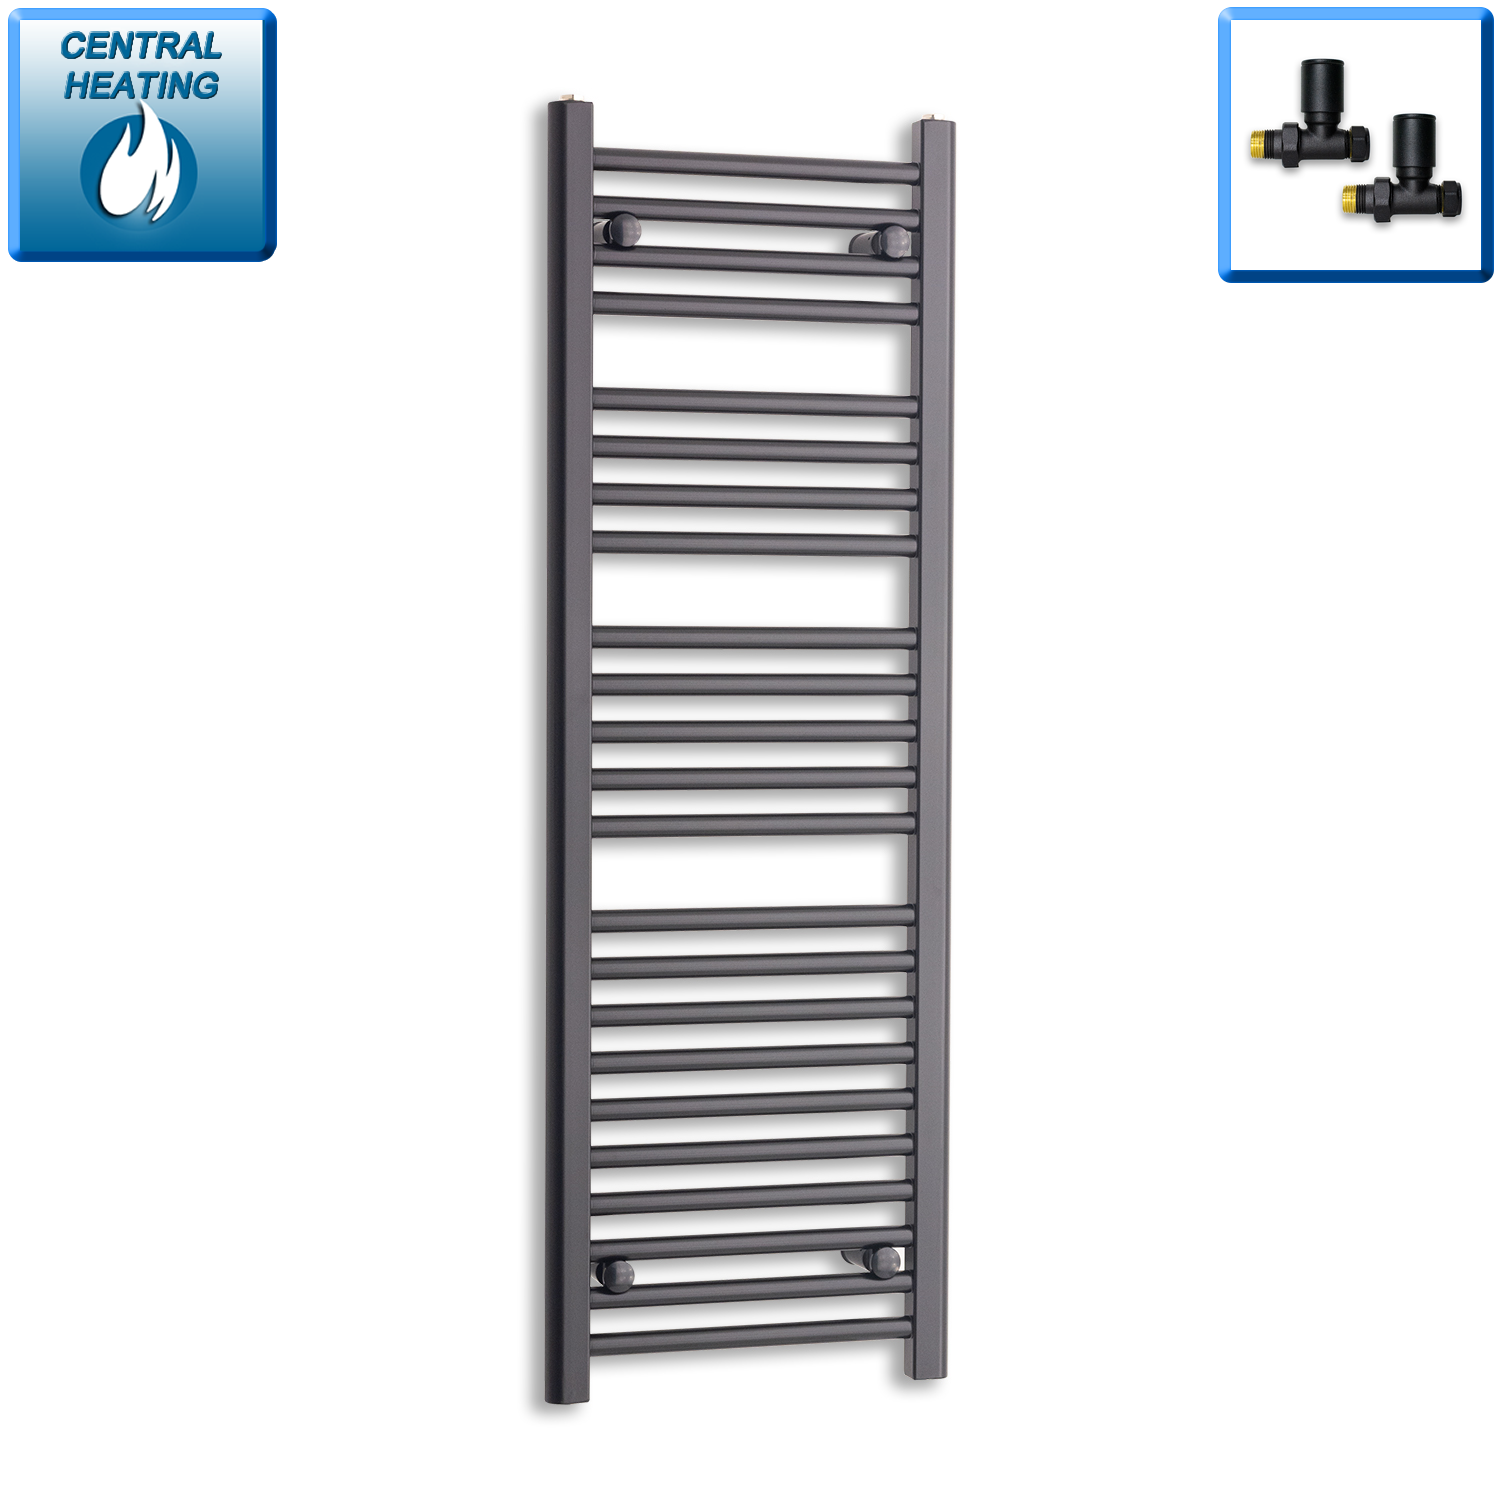 400mm Wide 1200mm High Black Towel Rail Radiator With Straight Valve